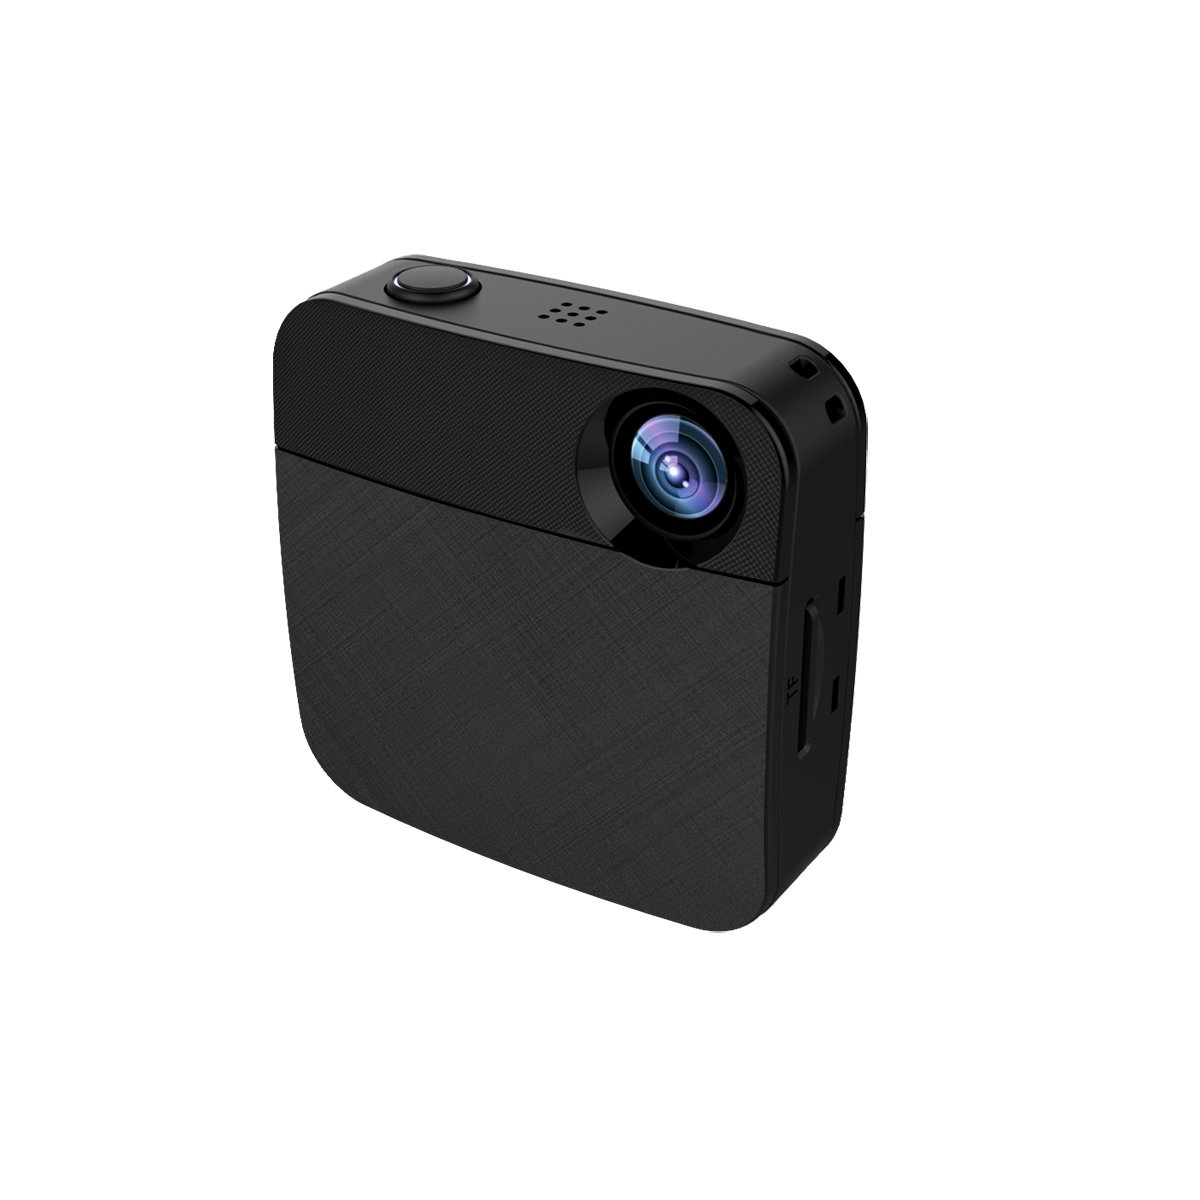 KEHAN CubeCam WIFI body wearable HD video camera, Facebook/Youtube live stream, share video on Twitter/Instagram instantly + 32GB Memory Card